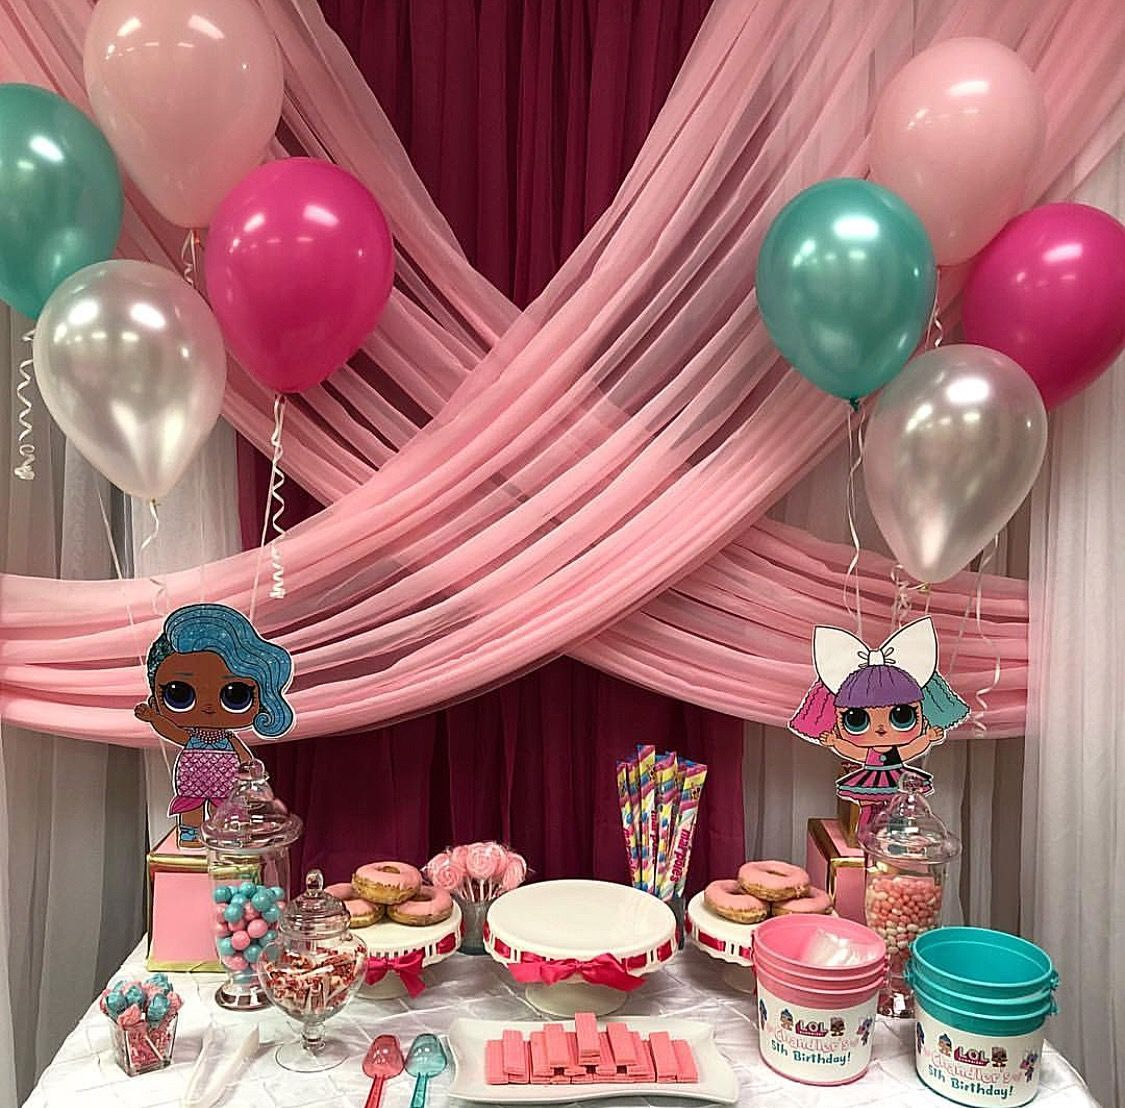 Pin by Luzy Ayala on Lol | Pinterest | Birthdays, Surprise ... for Decoration Ideas For Birthday Surprise  55nar